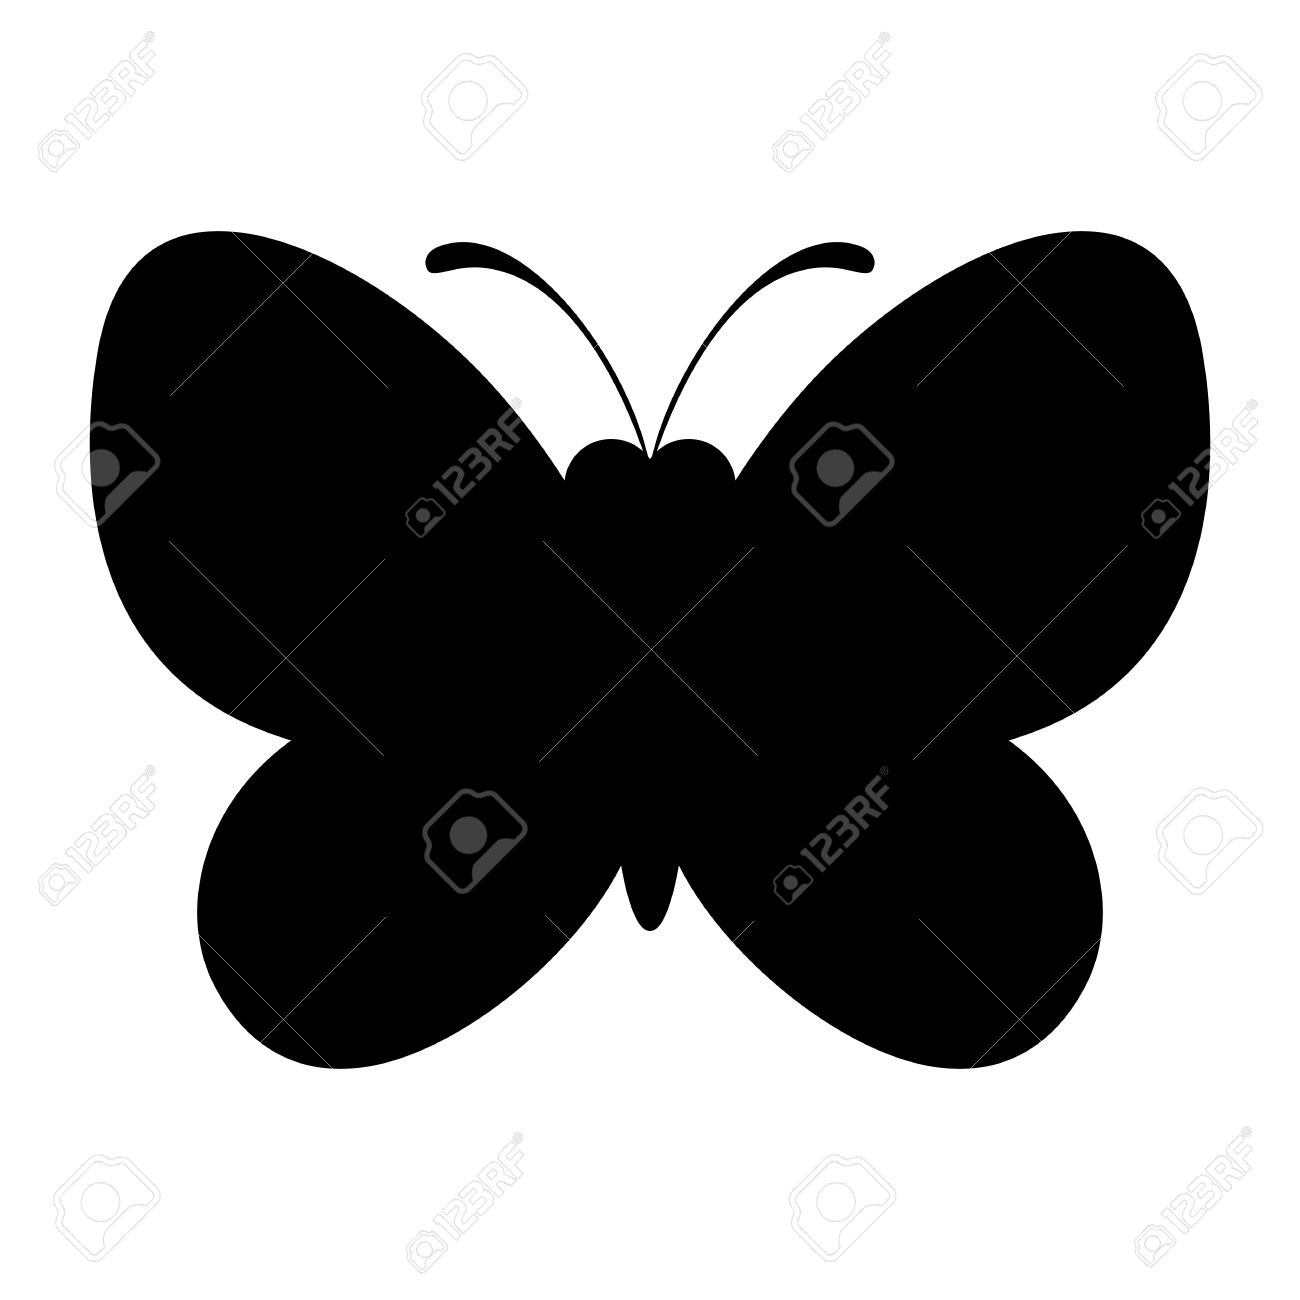 35,849 Butterfly Silhouette Cliparts, Stock Vector And Royalty.